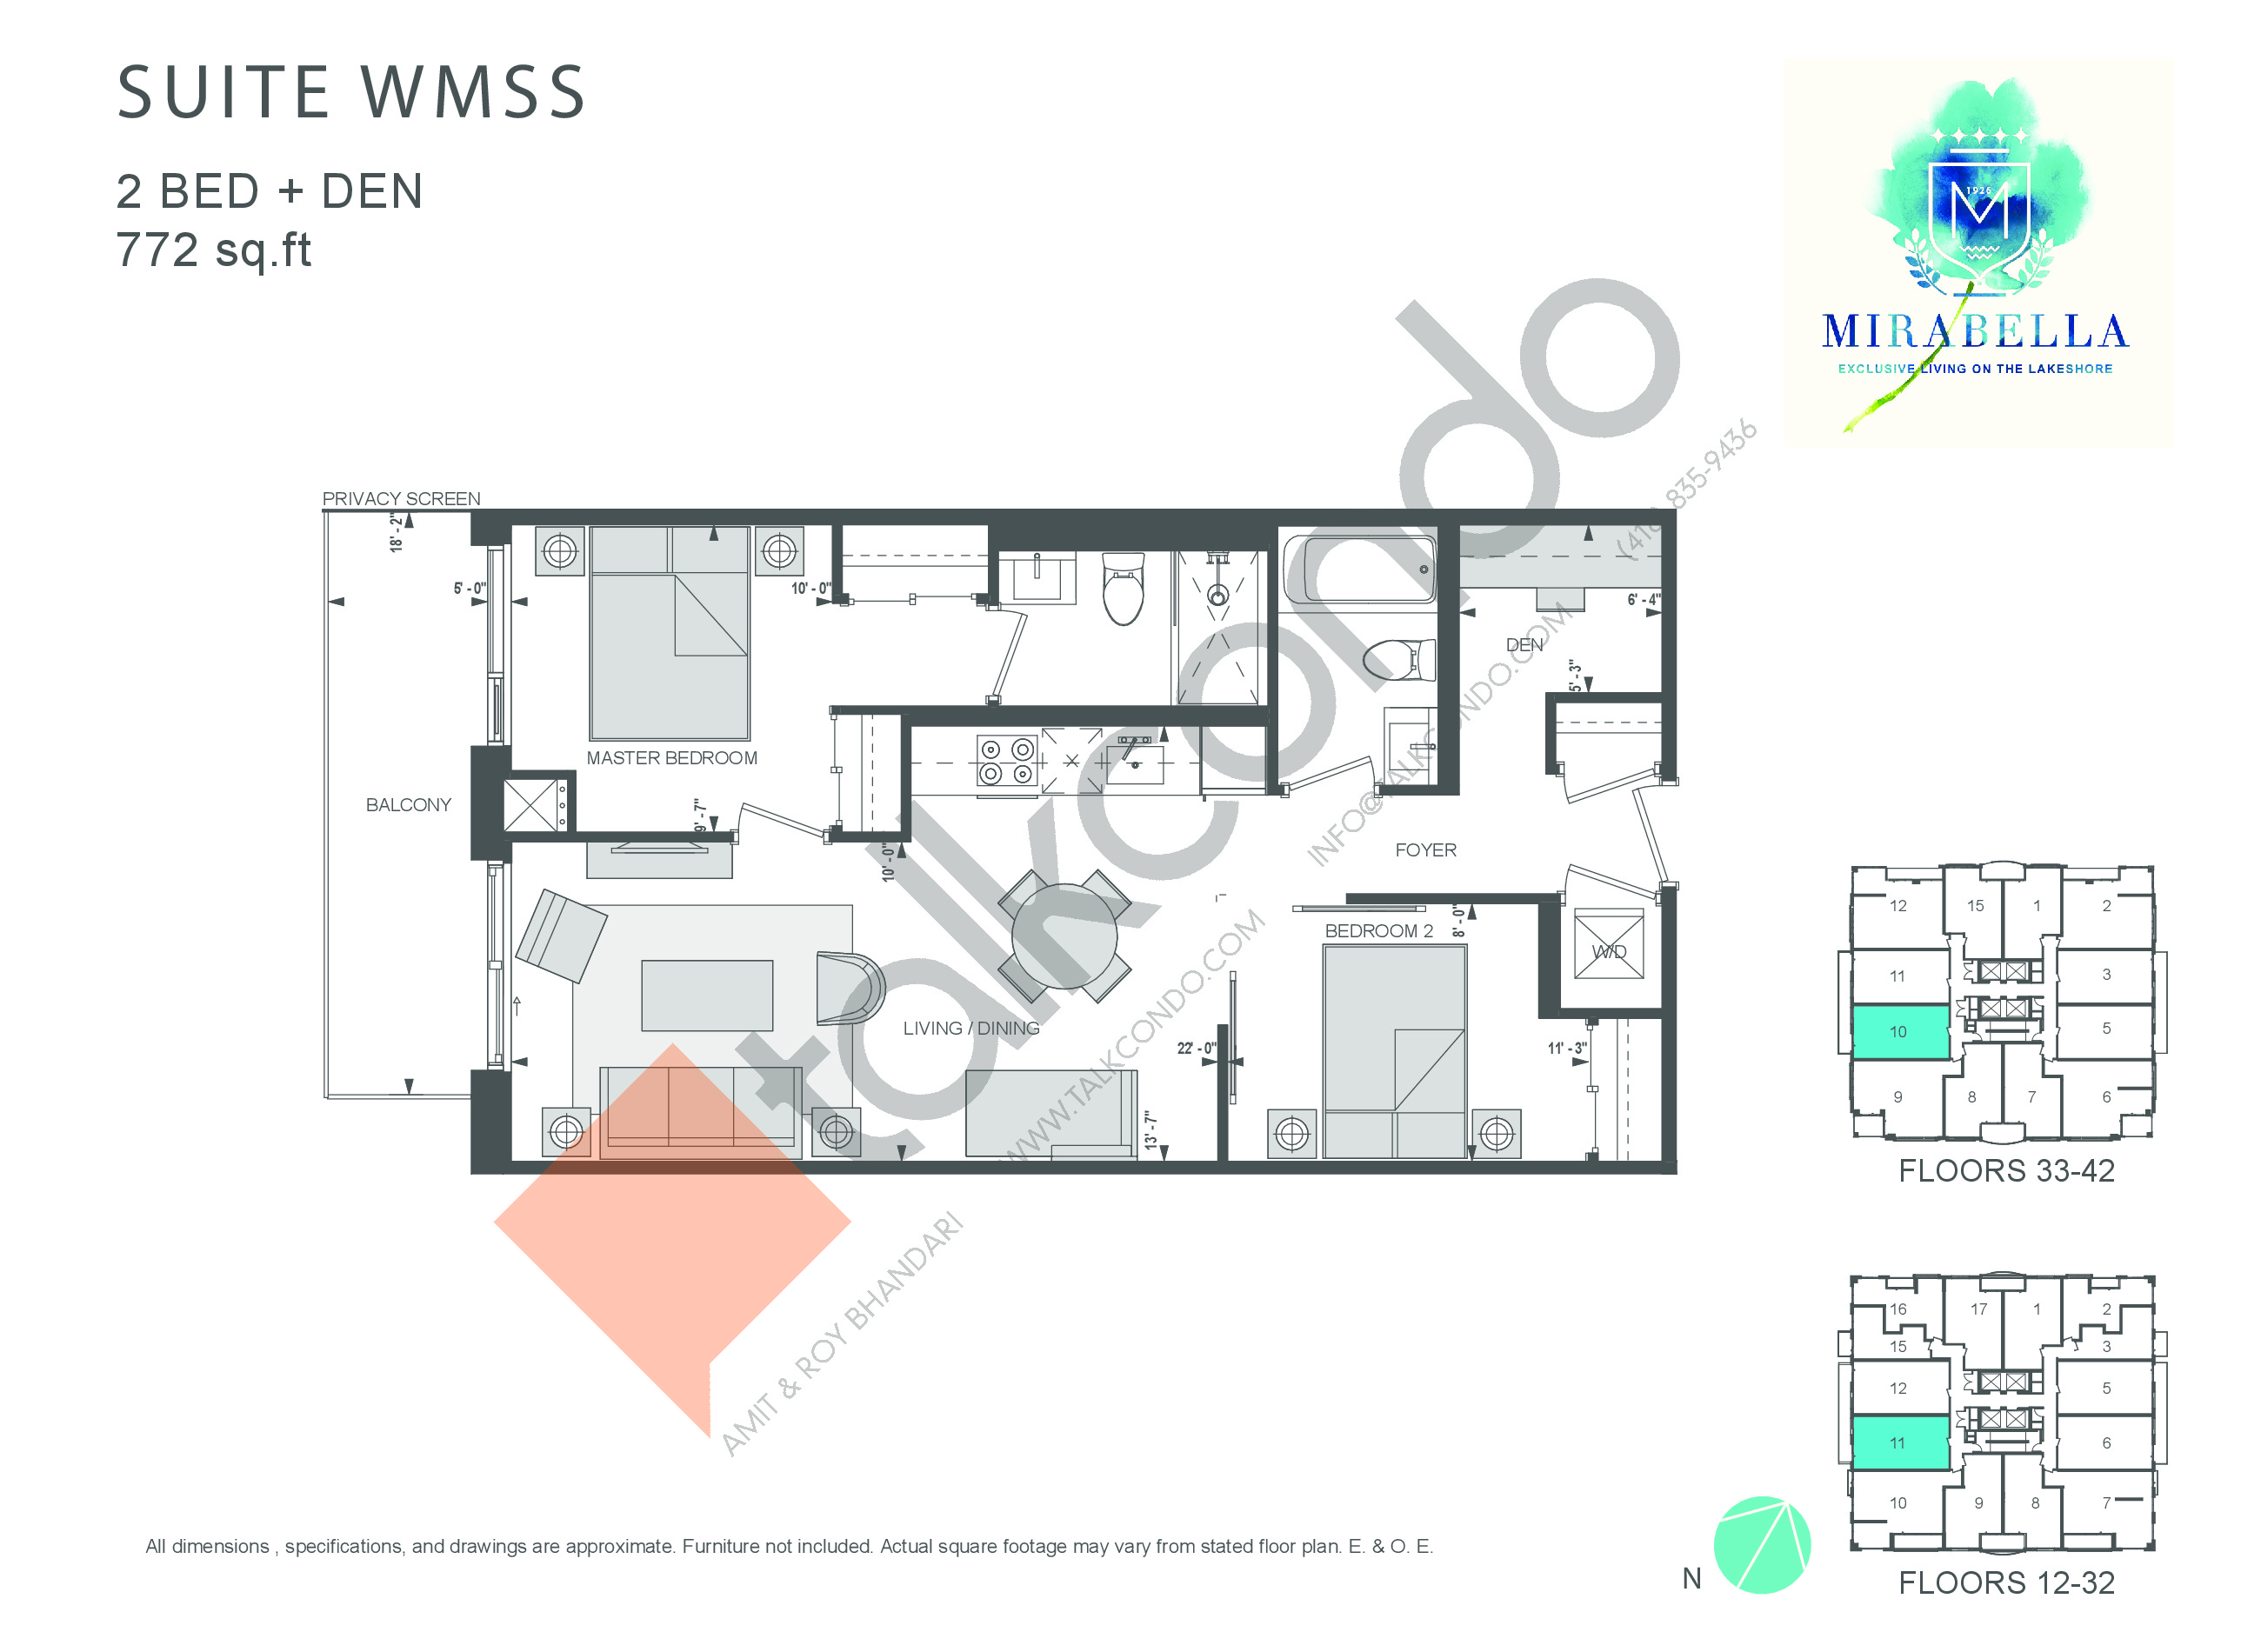 Suite WMSS Floor Plan at Mirabella Luxury Condos East Tower - 772 sq.ft